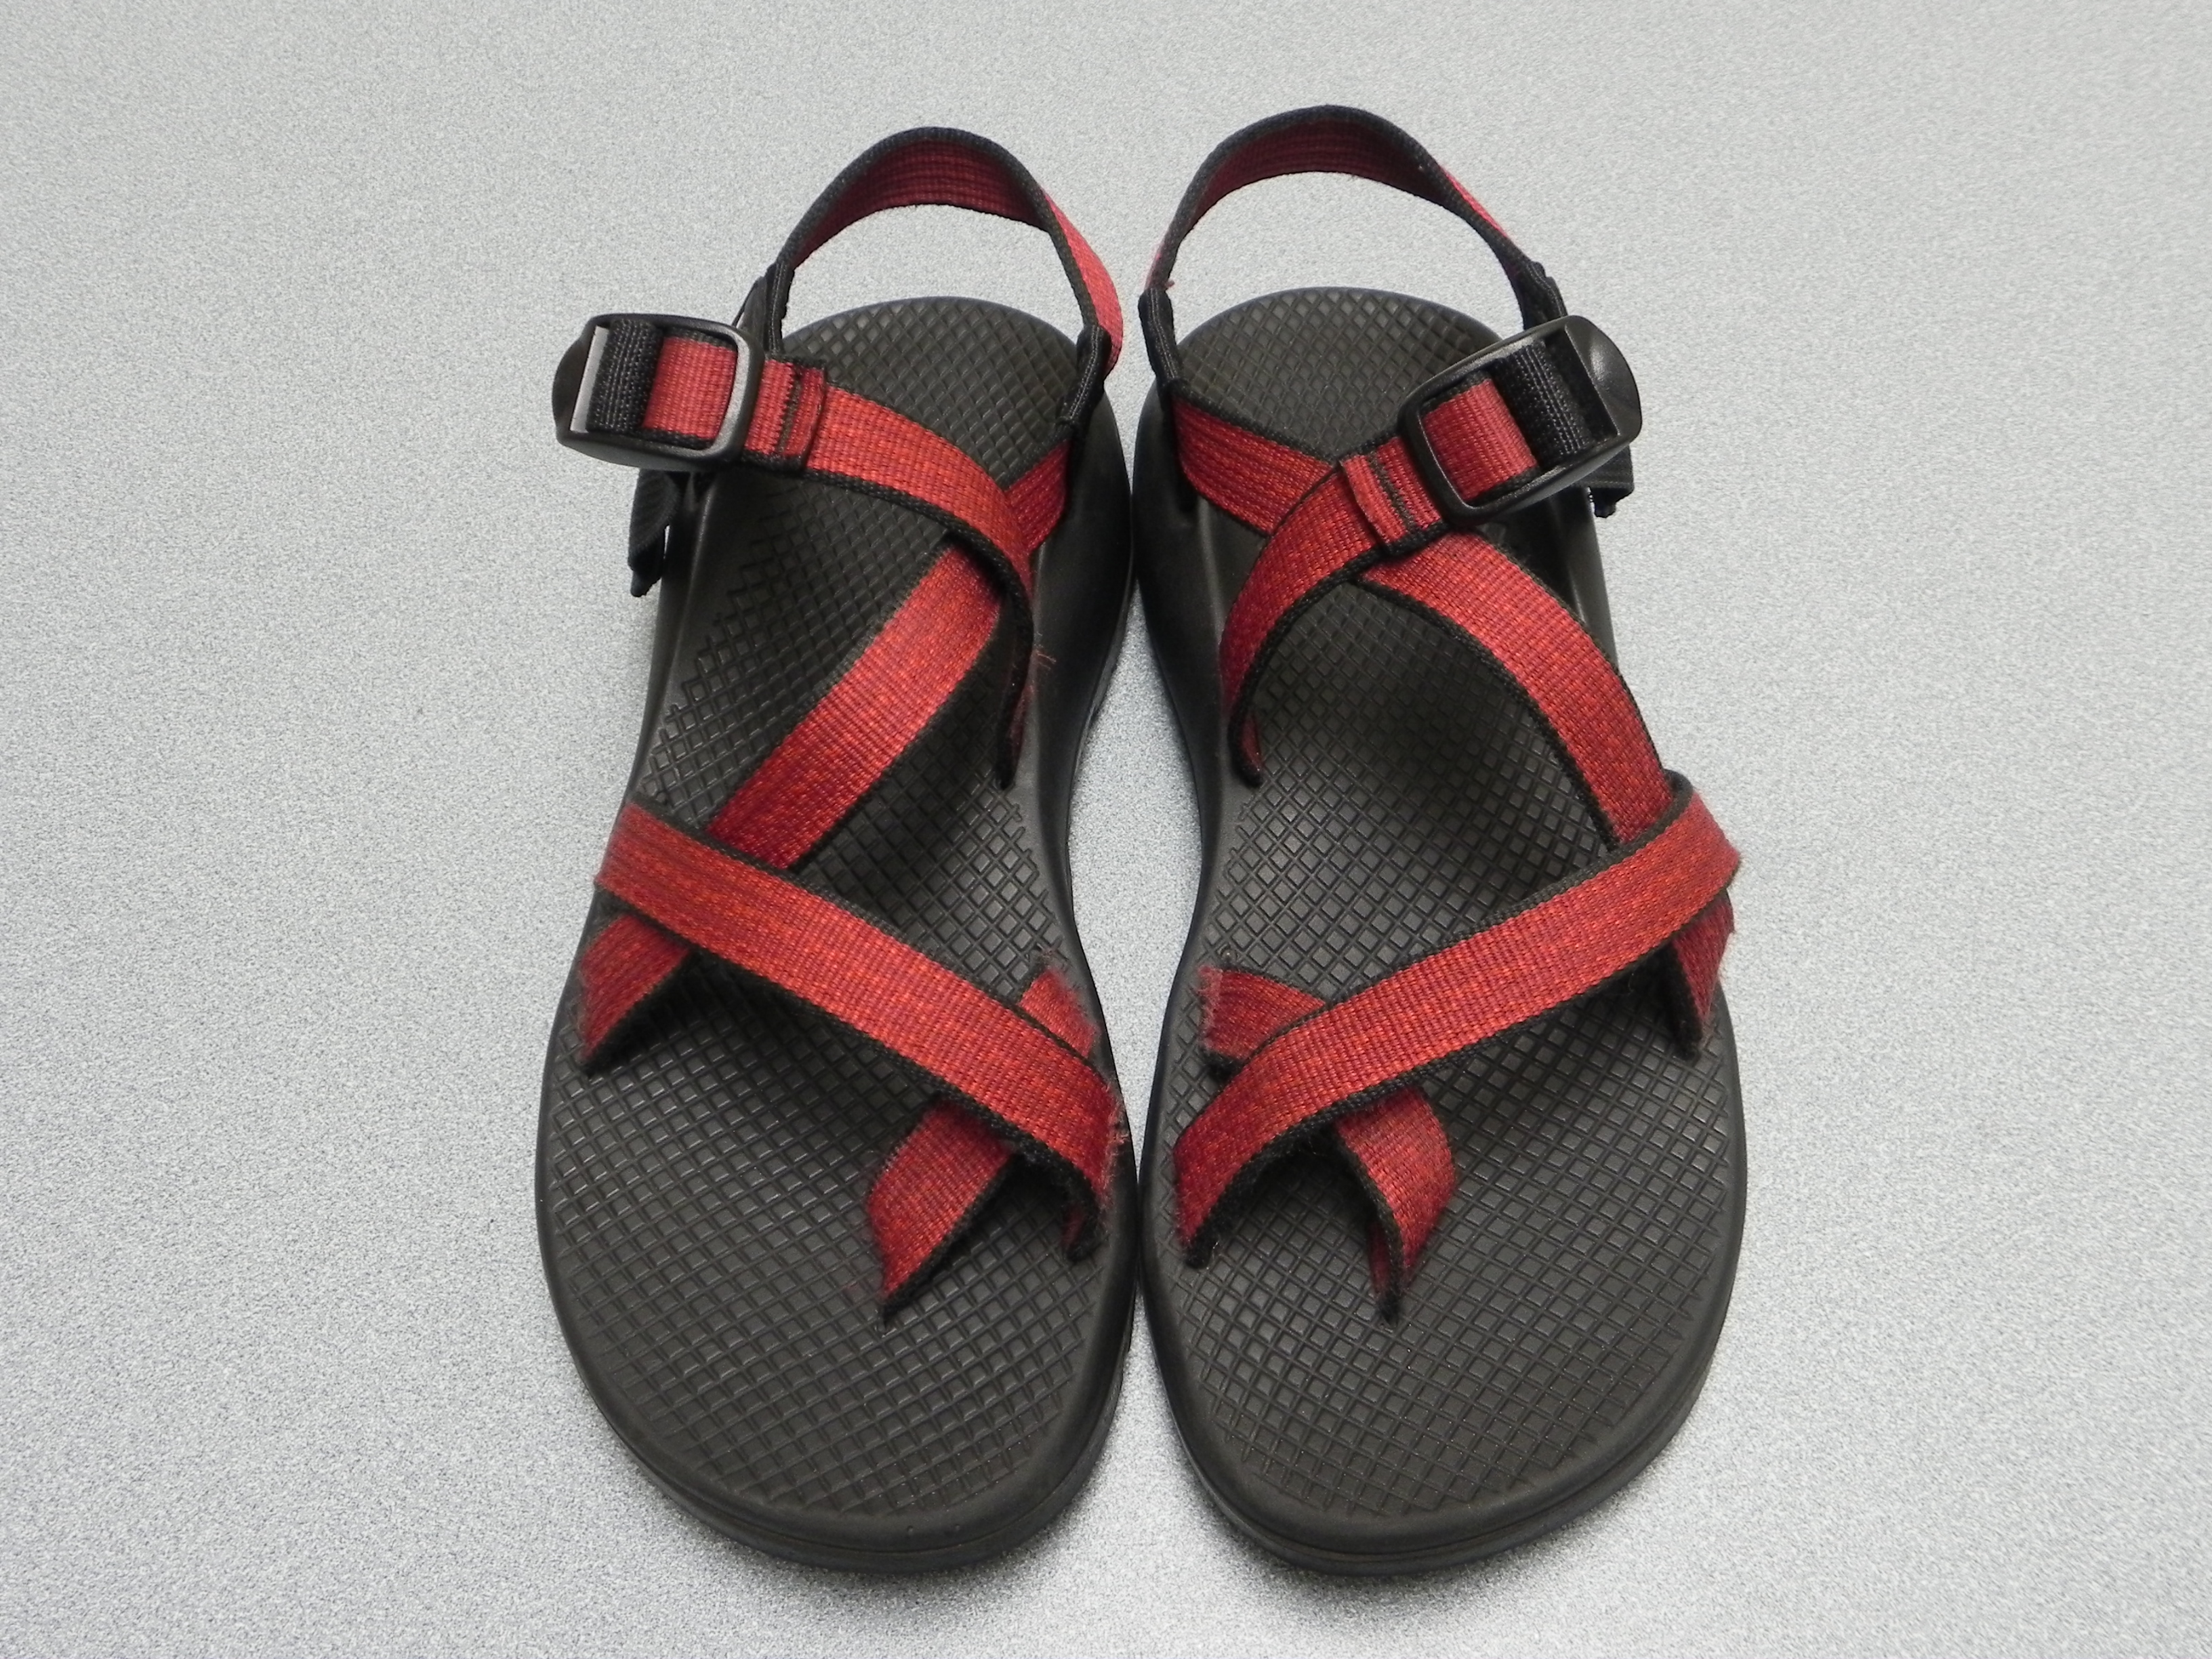 Next Clean And Skin Sandals Footwear How To 1Ju5Tcl3FK